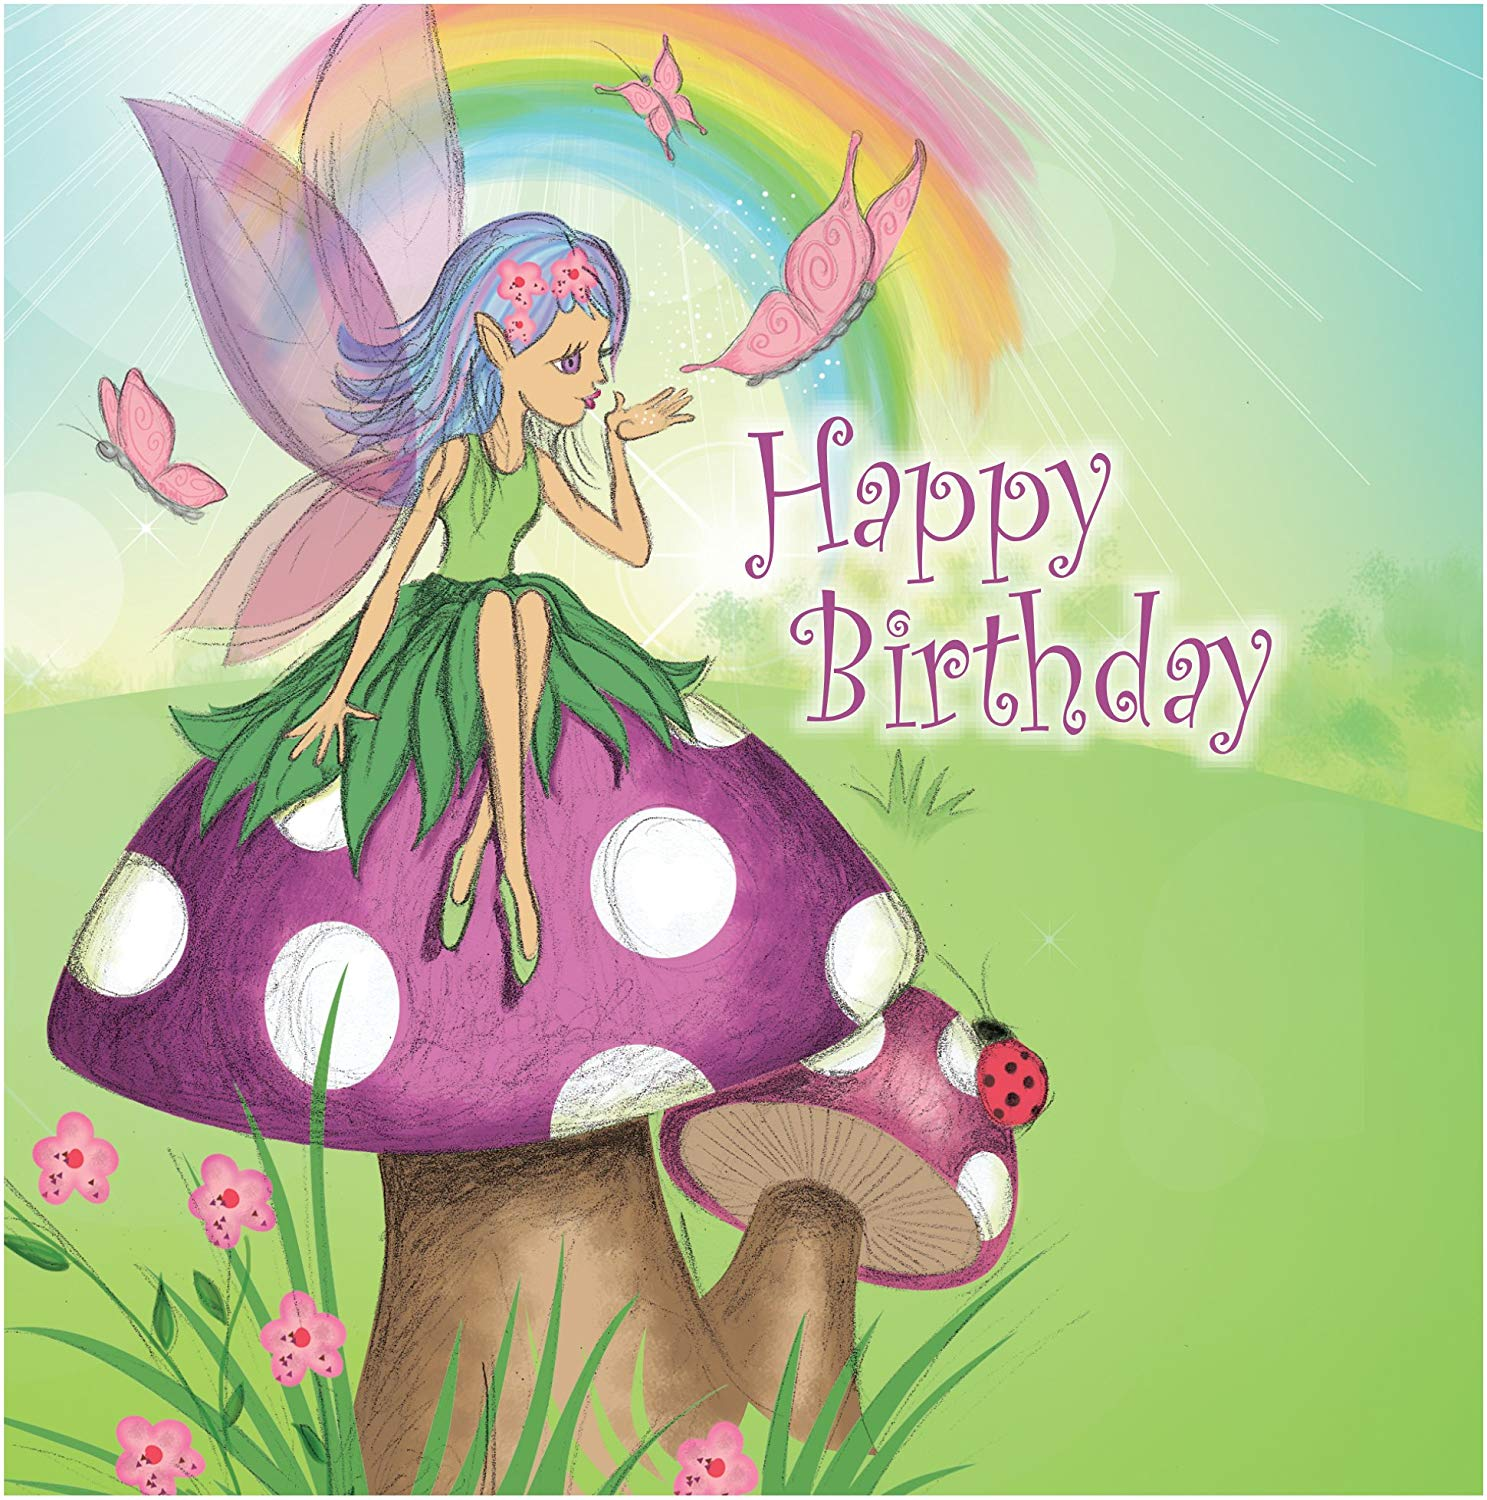 happy birthday fairy images ; 91Qf-r0IJhL